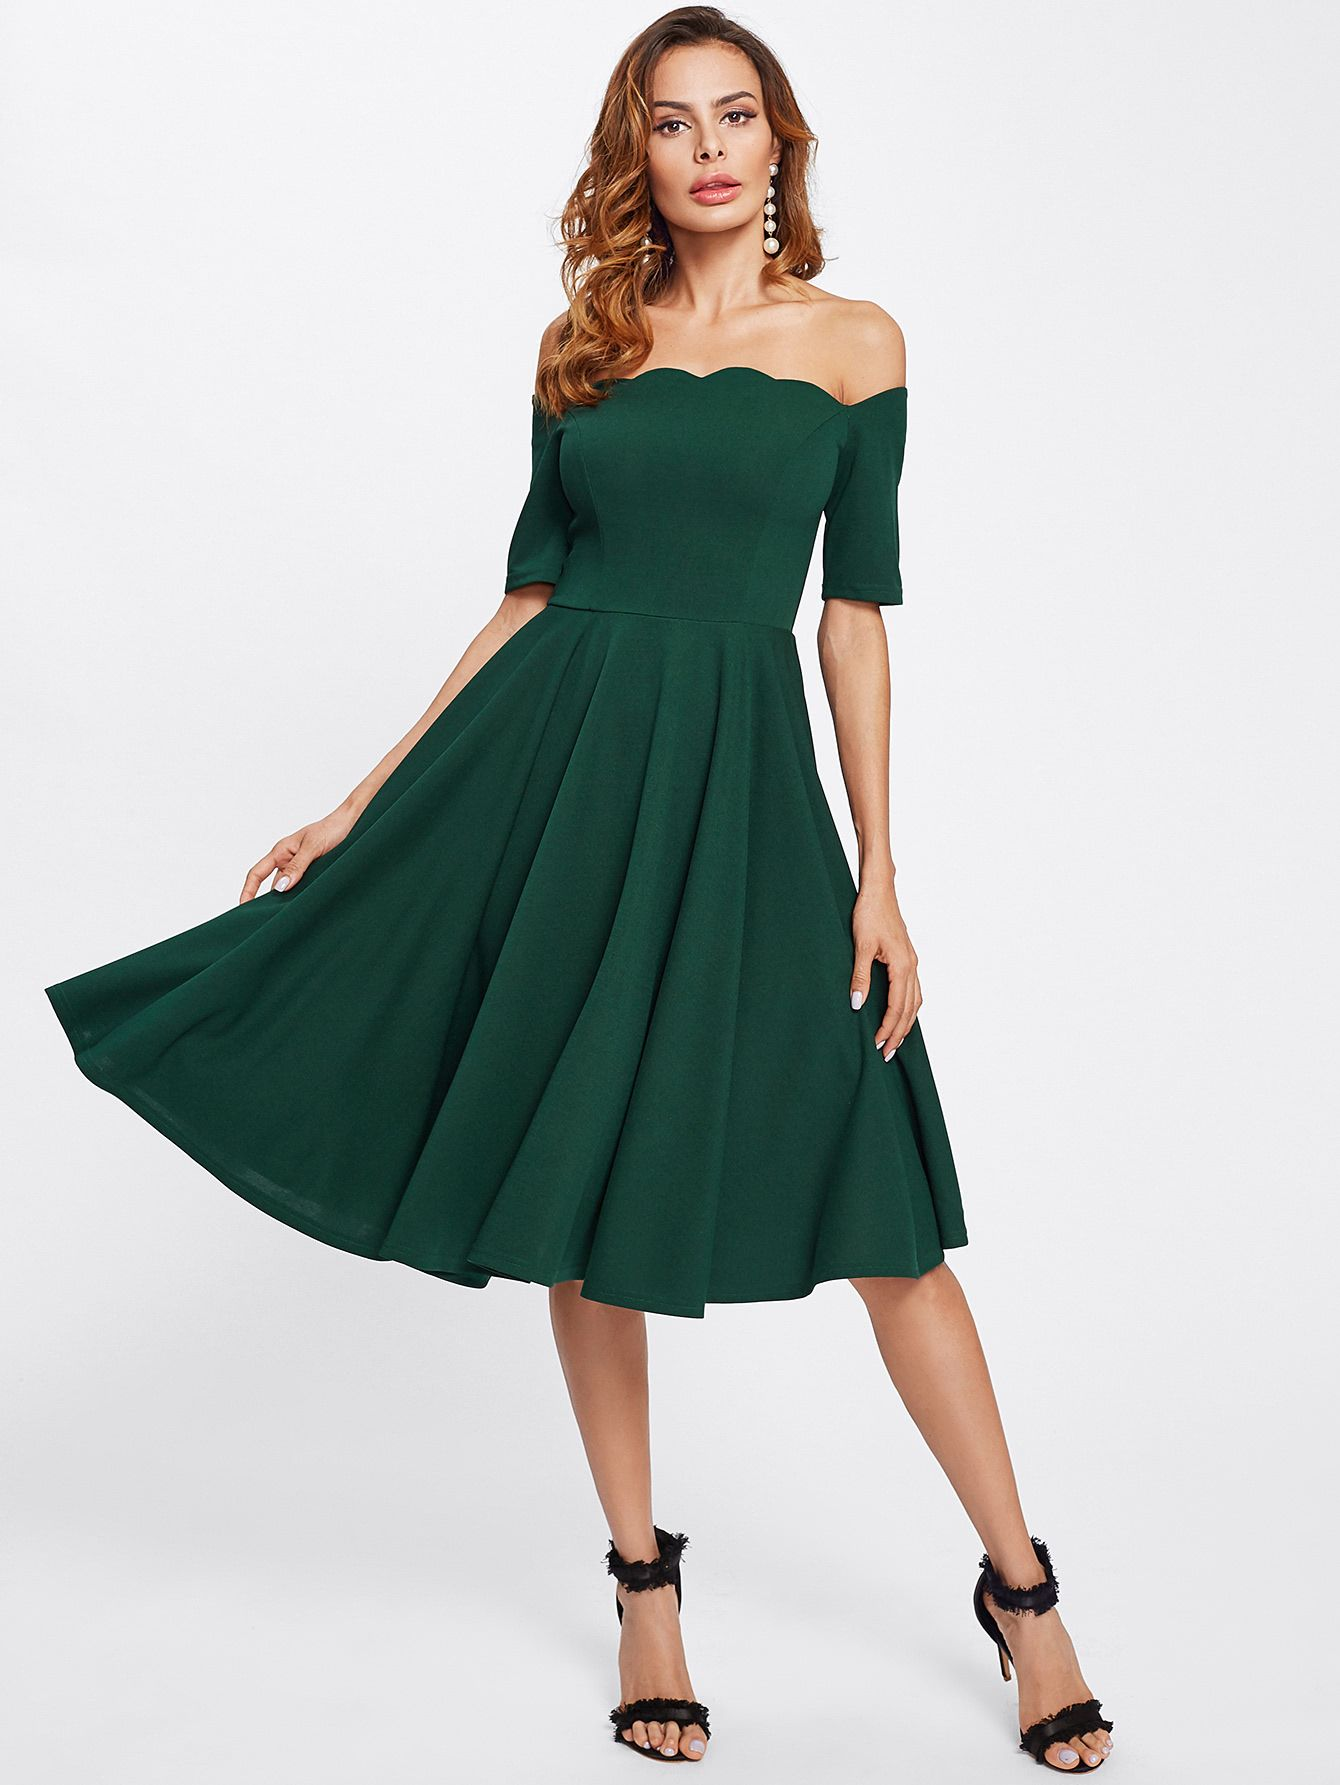 239e077221 Shop Scalloped Collar Pleated Dress online. SheIn offers Scalloped Collar  Pleated Dress & more to fit your fashionable needs.